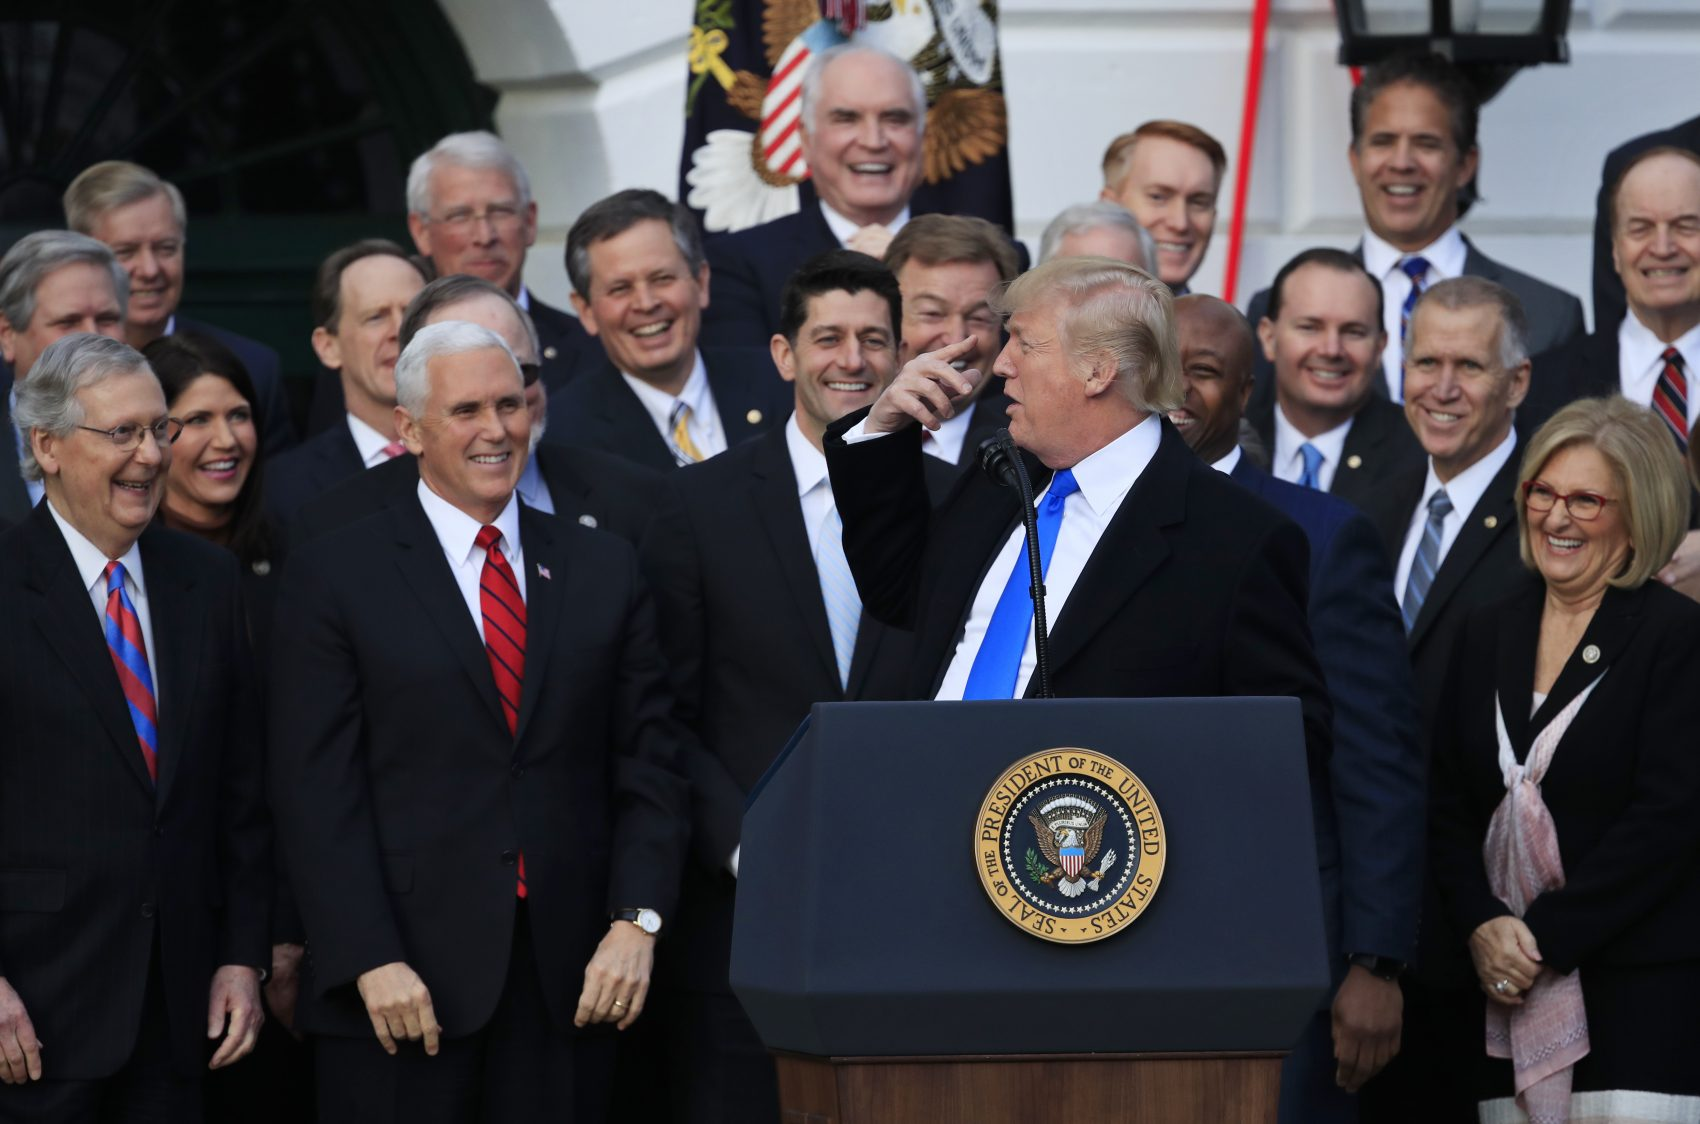 From left, Senate Majority Leader Mitch McConnell of Ky., Vice President Mike Pence, House Speaker Paul Ryan of Wis., and Republican lawmakers, react as President Donald Trump speaks (Manuel Balce Ceneta/AP)